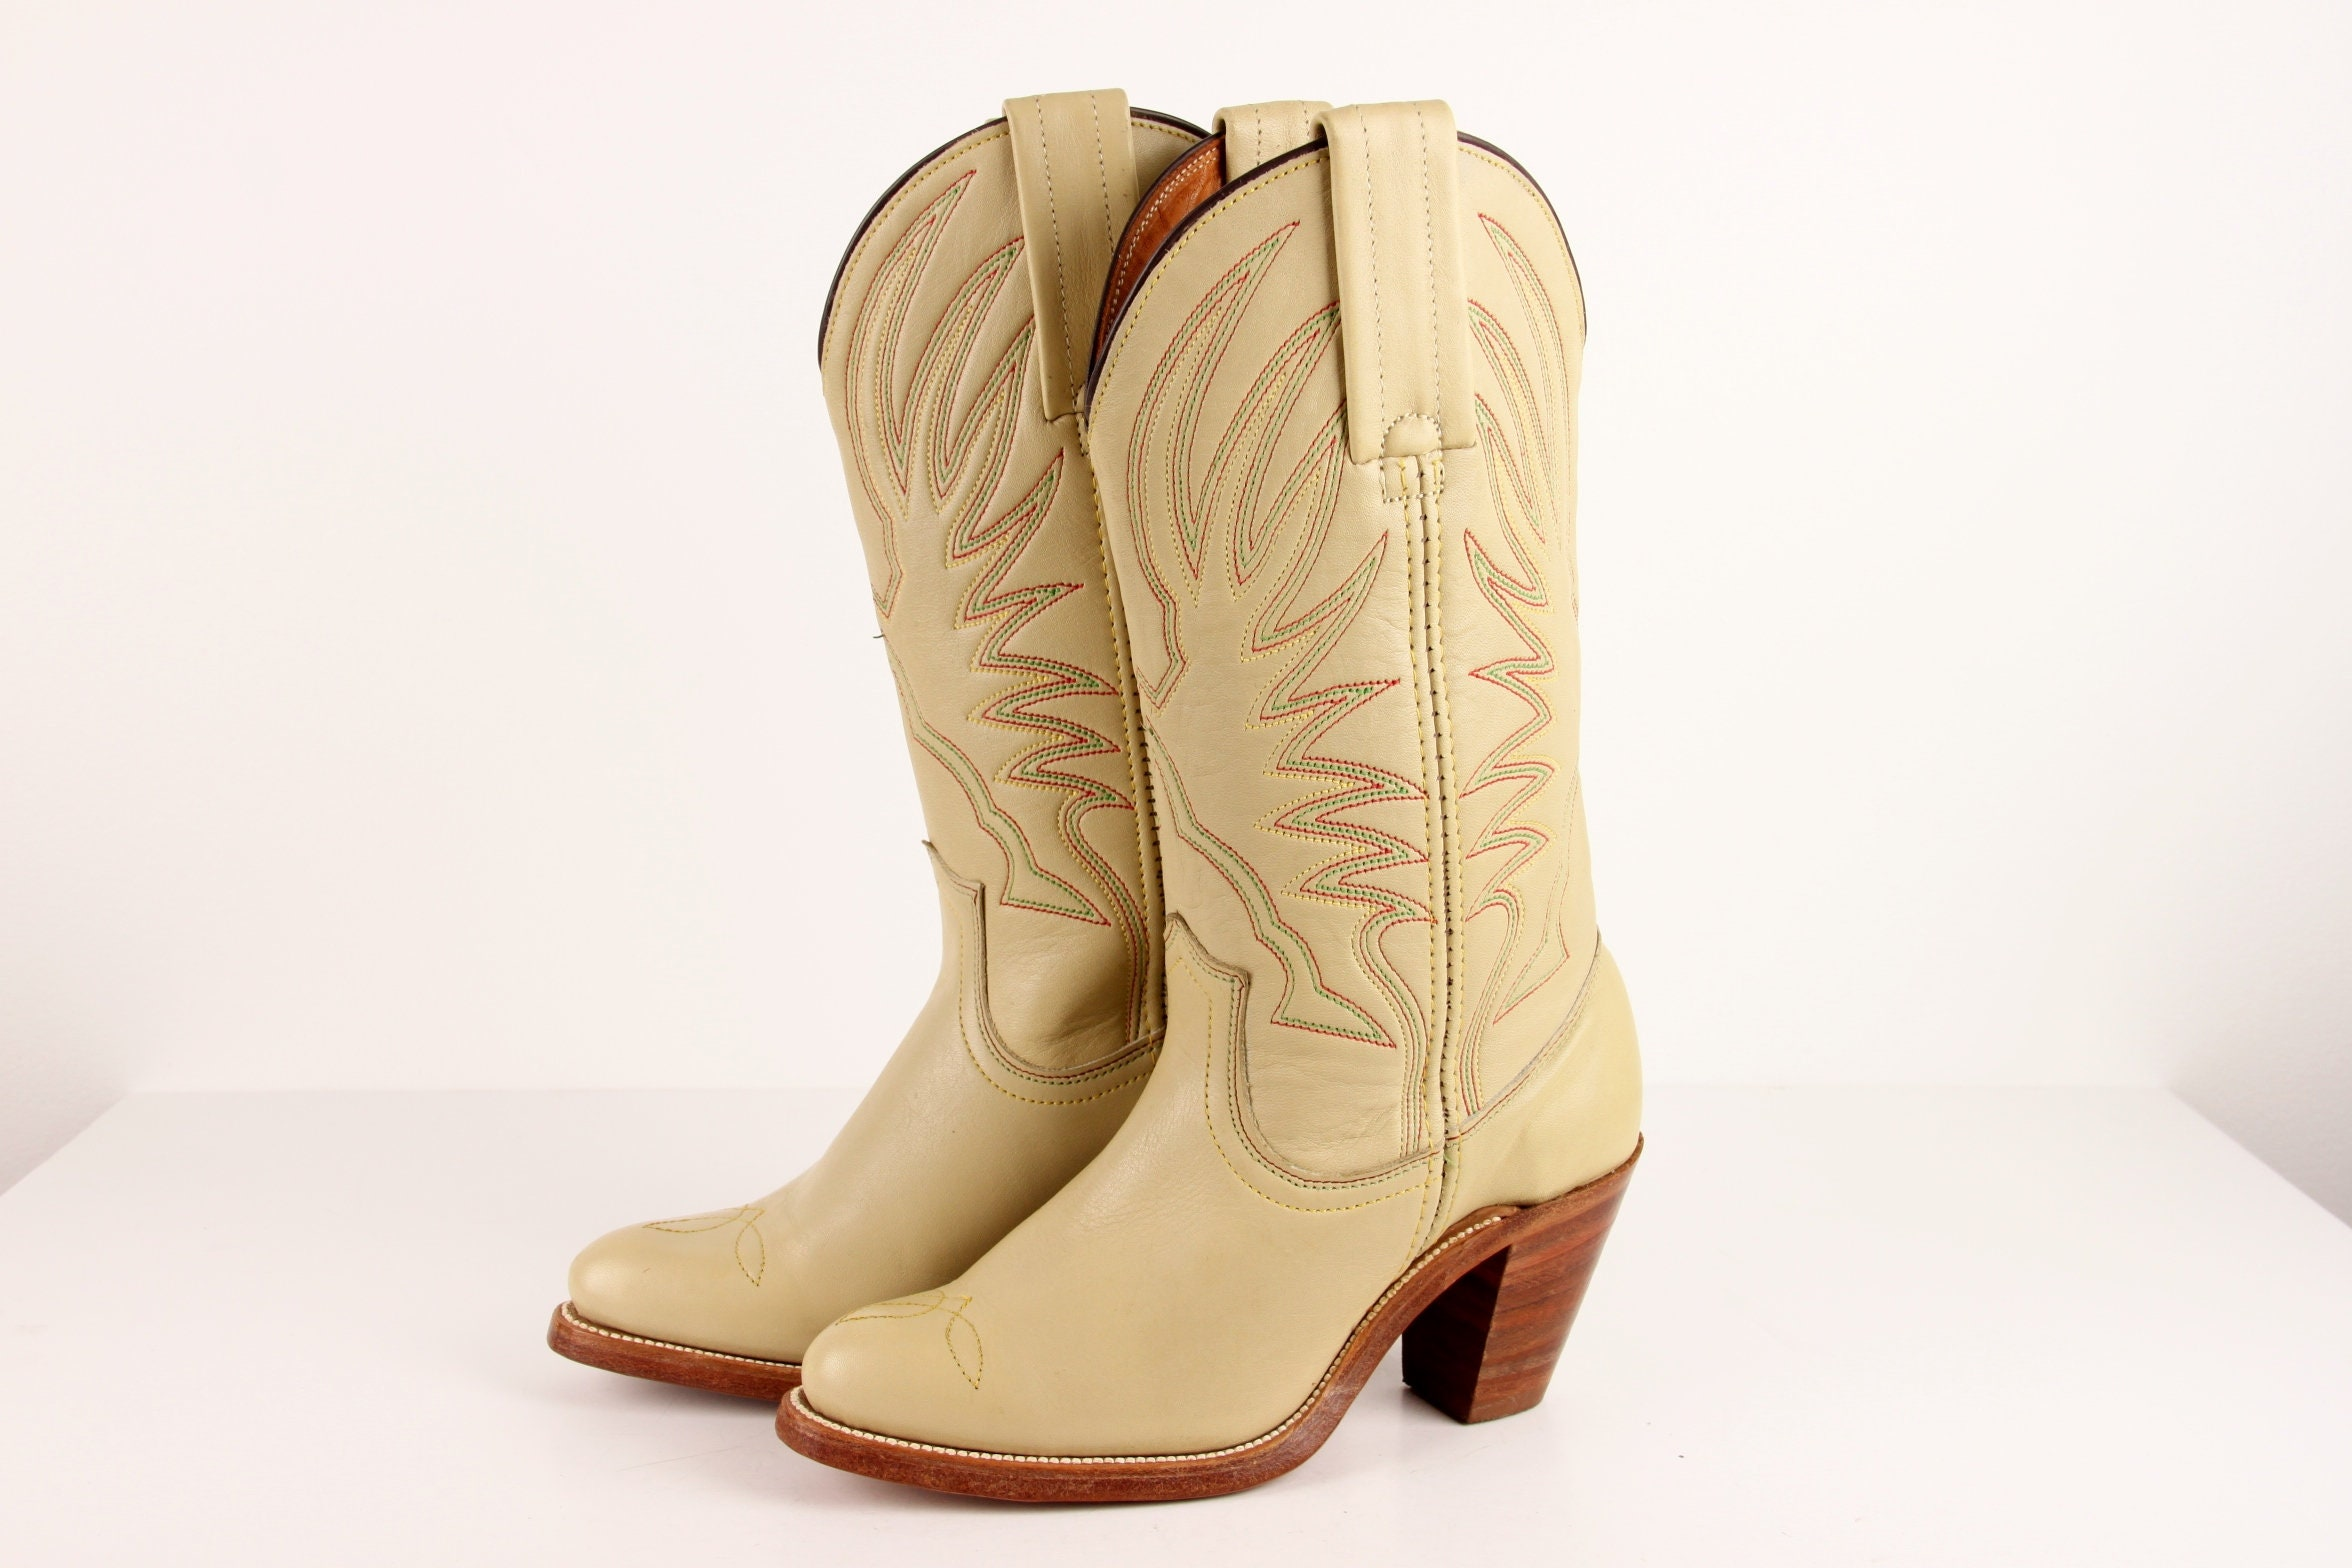 ff5c2be383e Vintage Frye Boots, New Irregular Frye Cowboy Cowgirl Boots, High Heel  Western Boots, Embroidered Cream Tan Leather Boots, Womens size 5 B